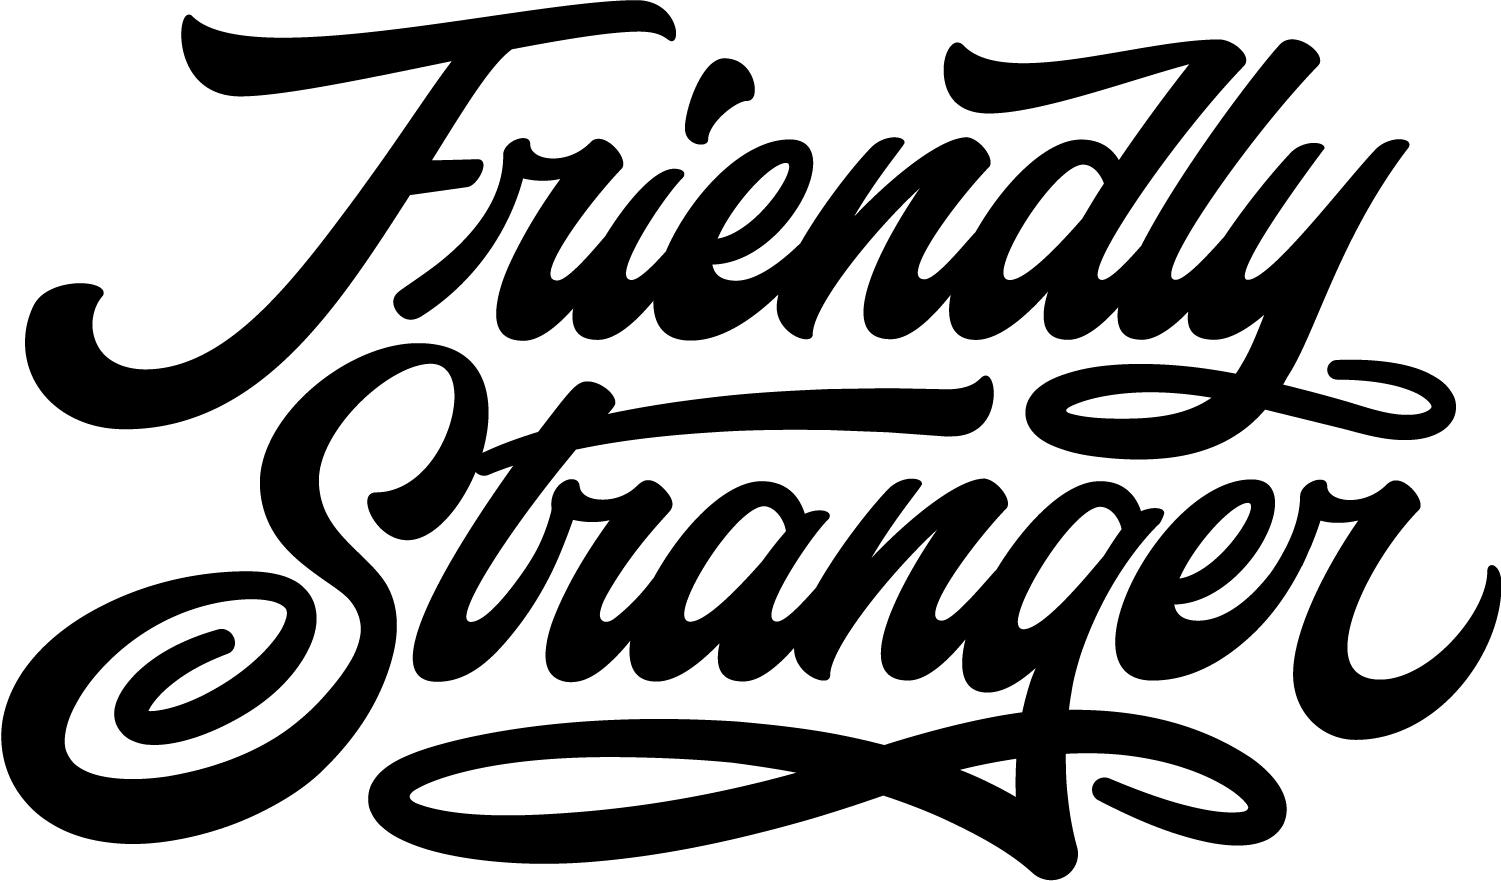 Friendly Stranger logo